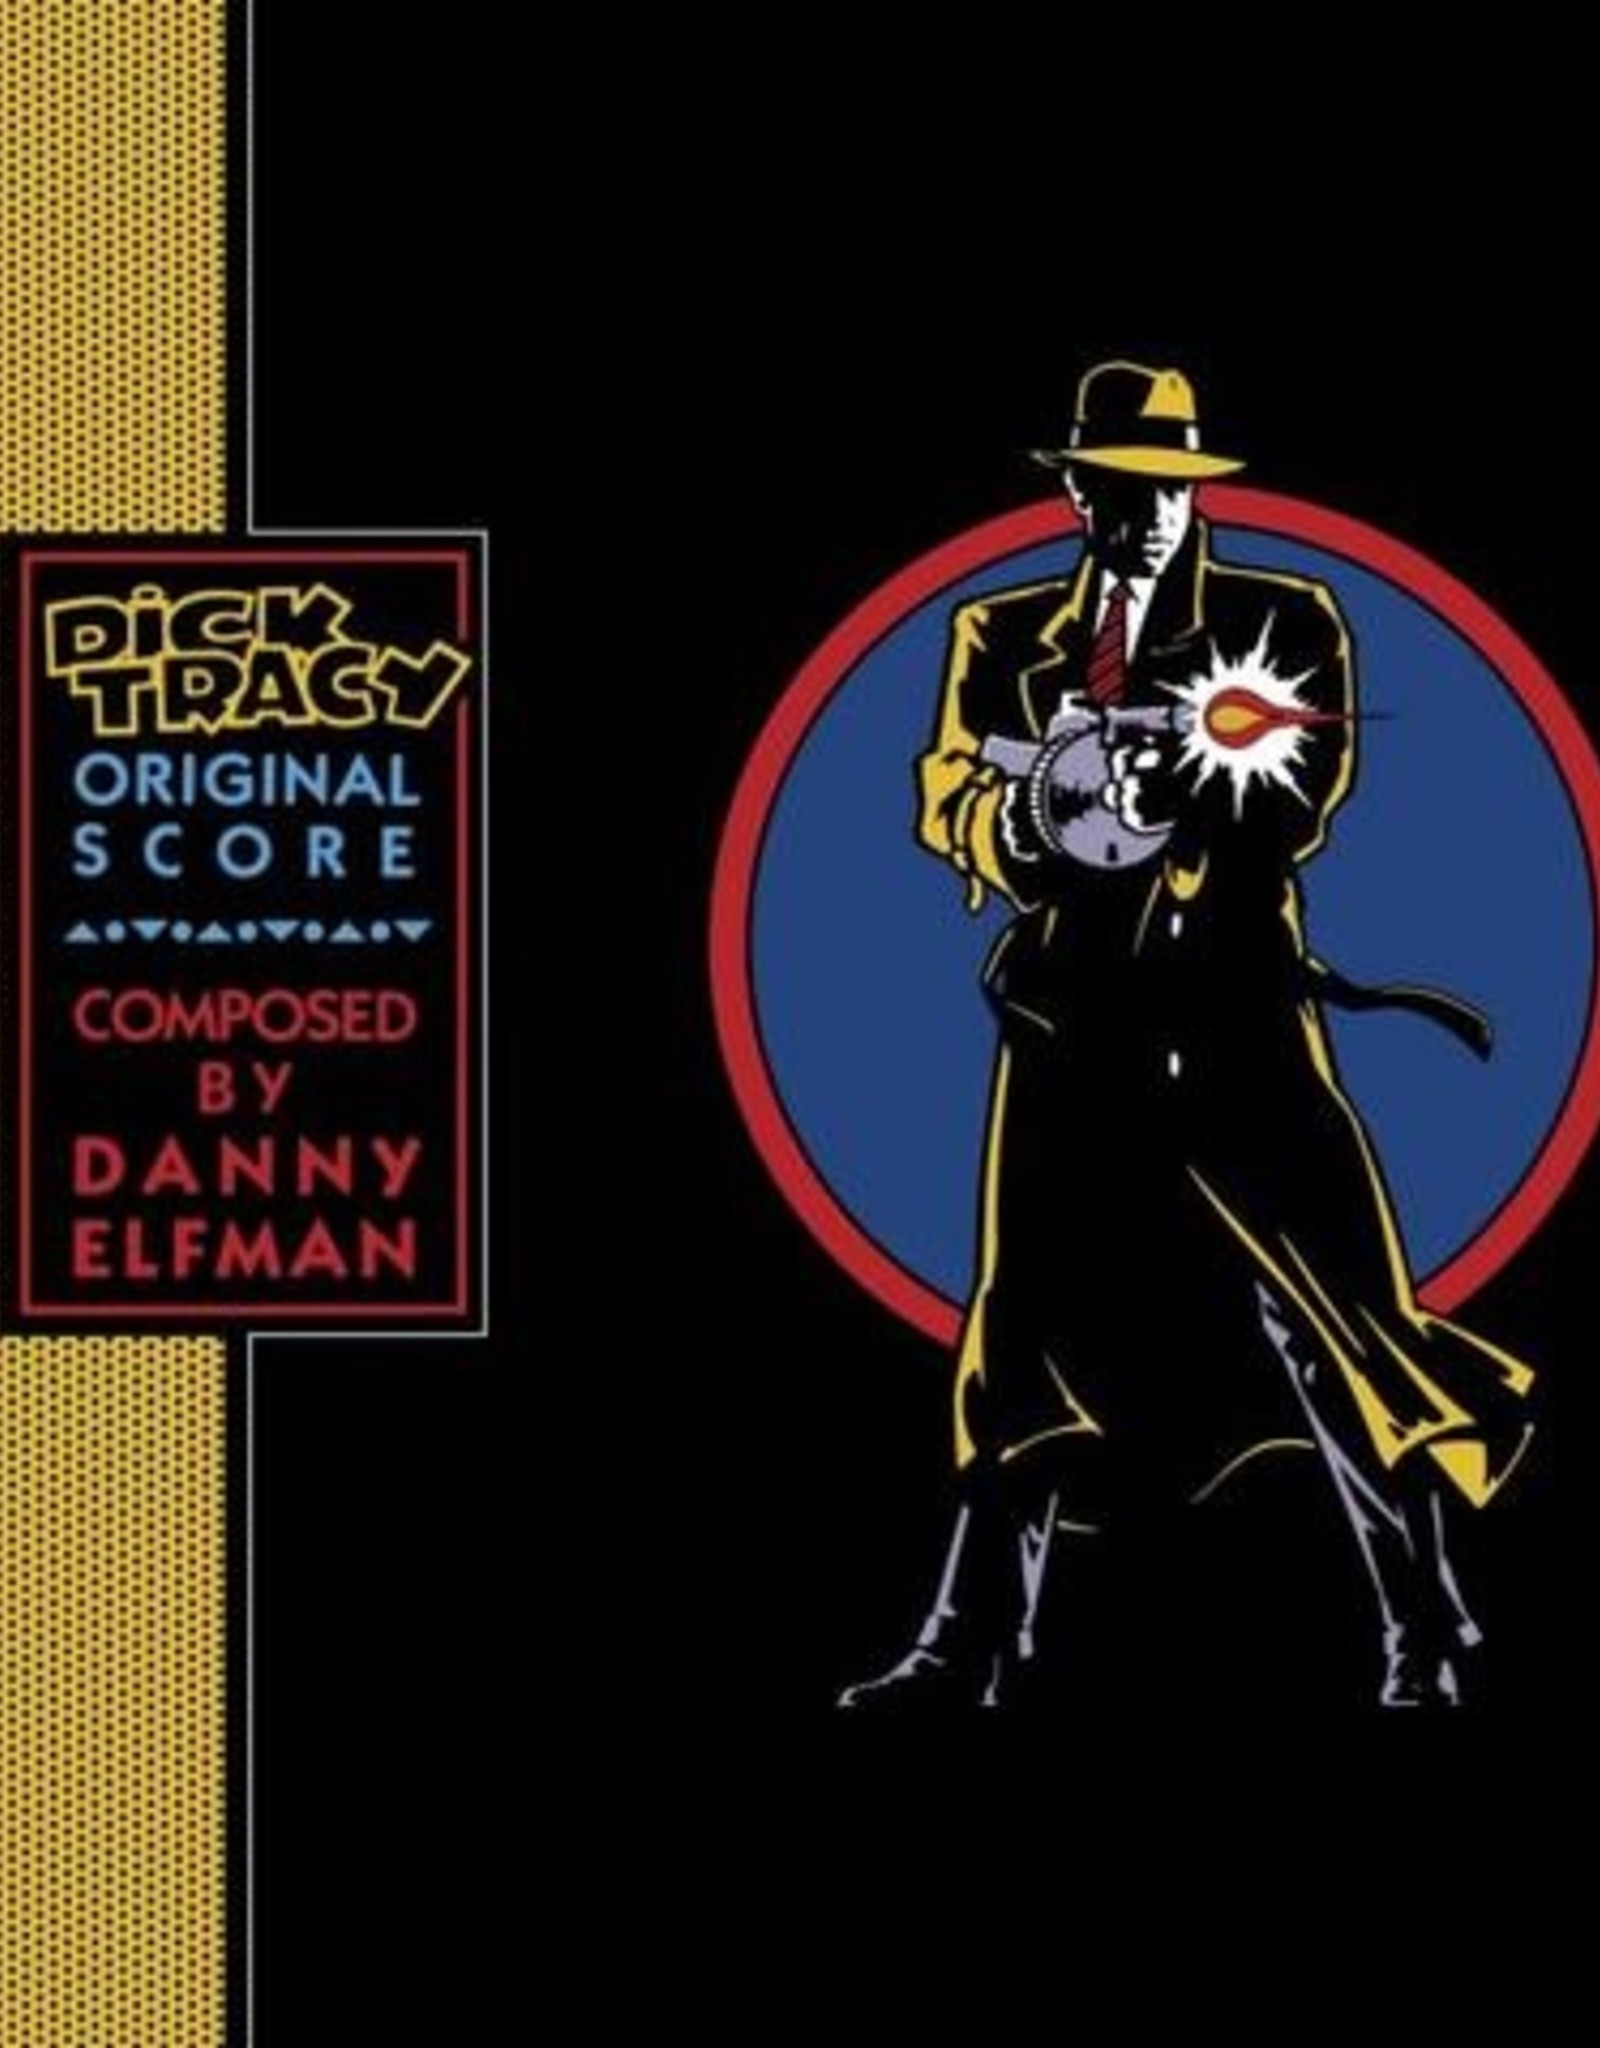 Danny Elfman - Dick Tracy (Original Score) (Colored Vinyl, Blue, Clear Vinyl)